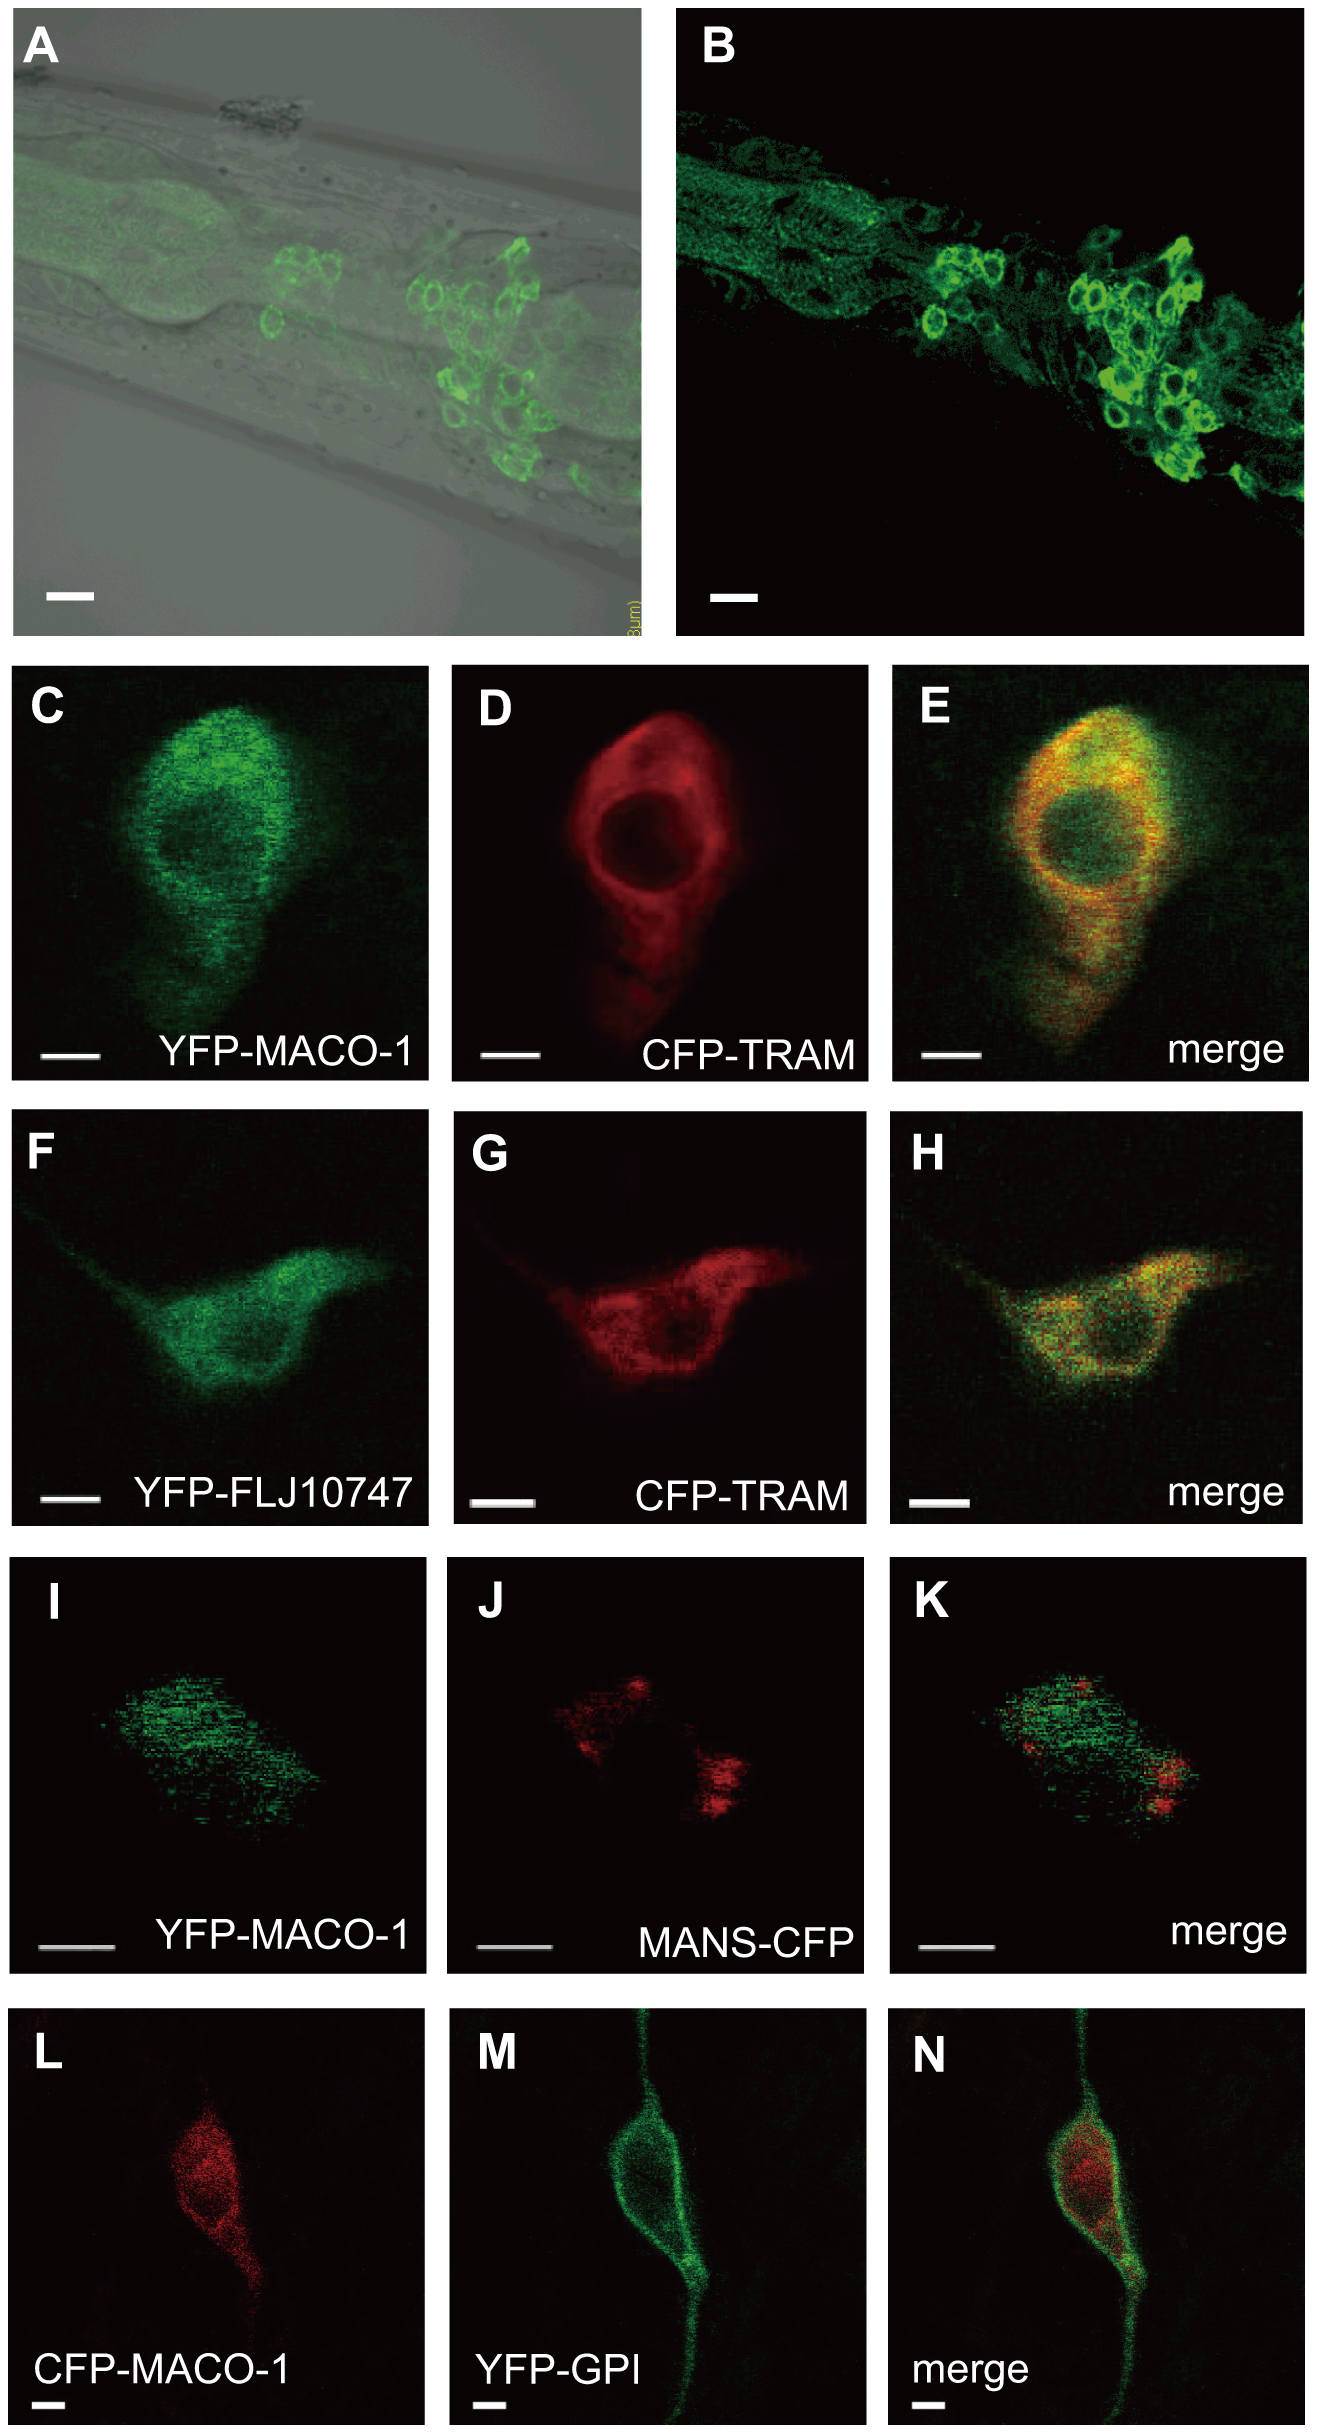 Subcellular localization of MACO-1.